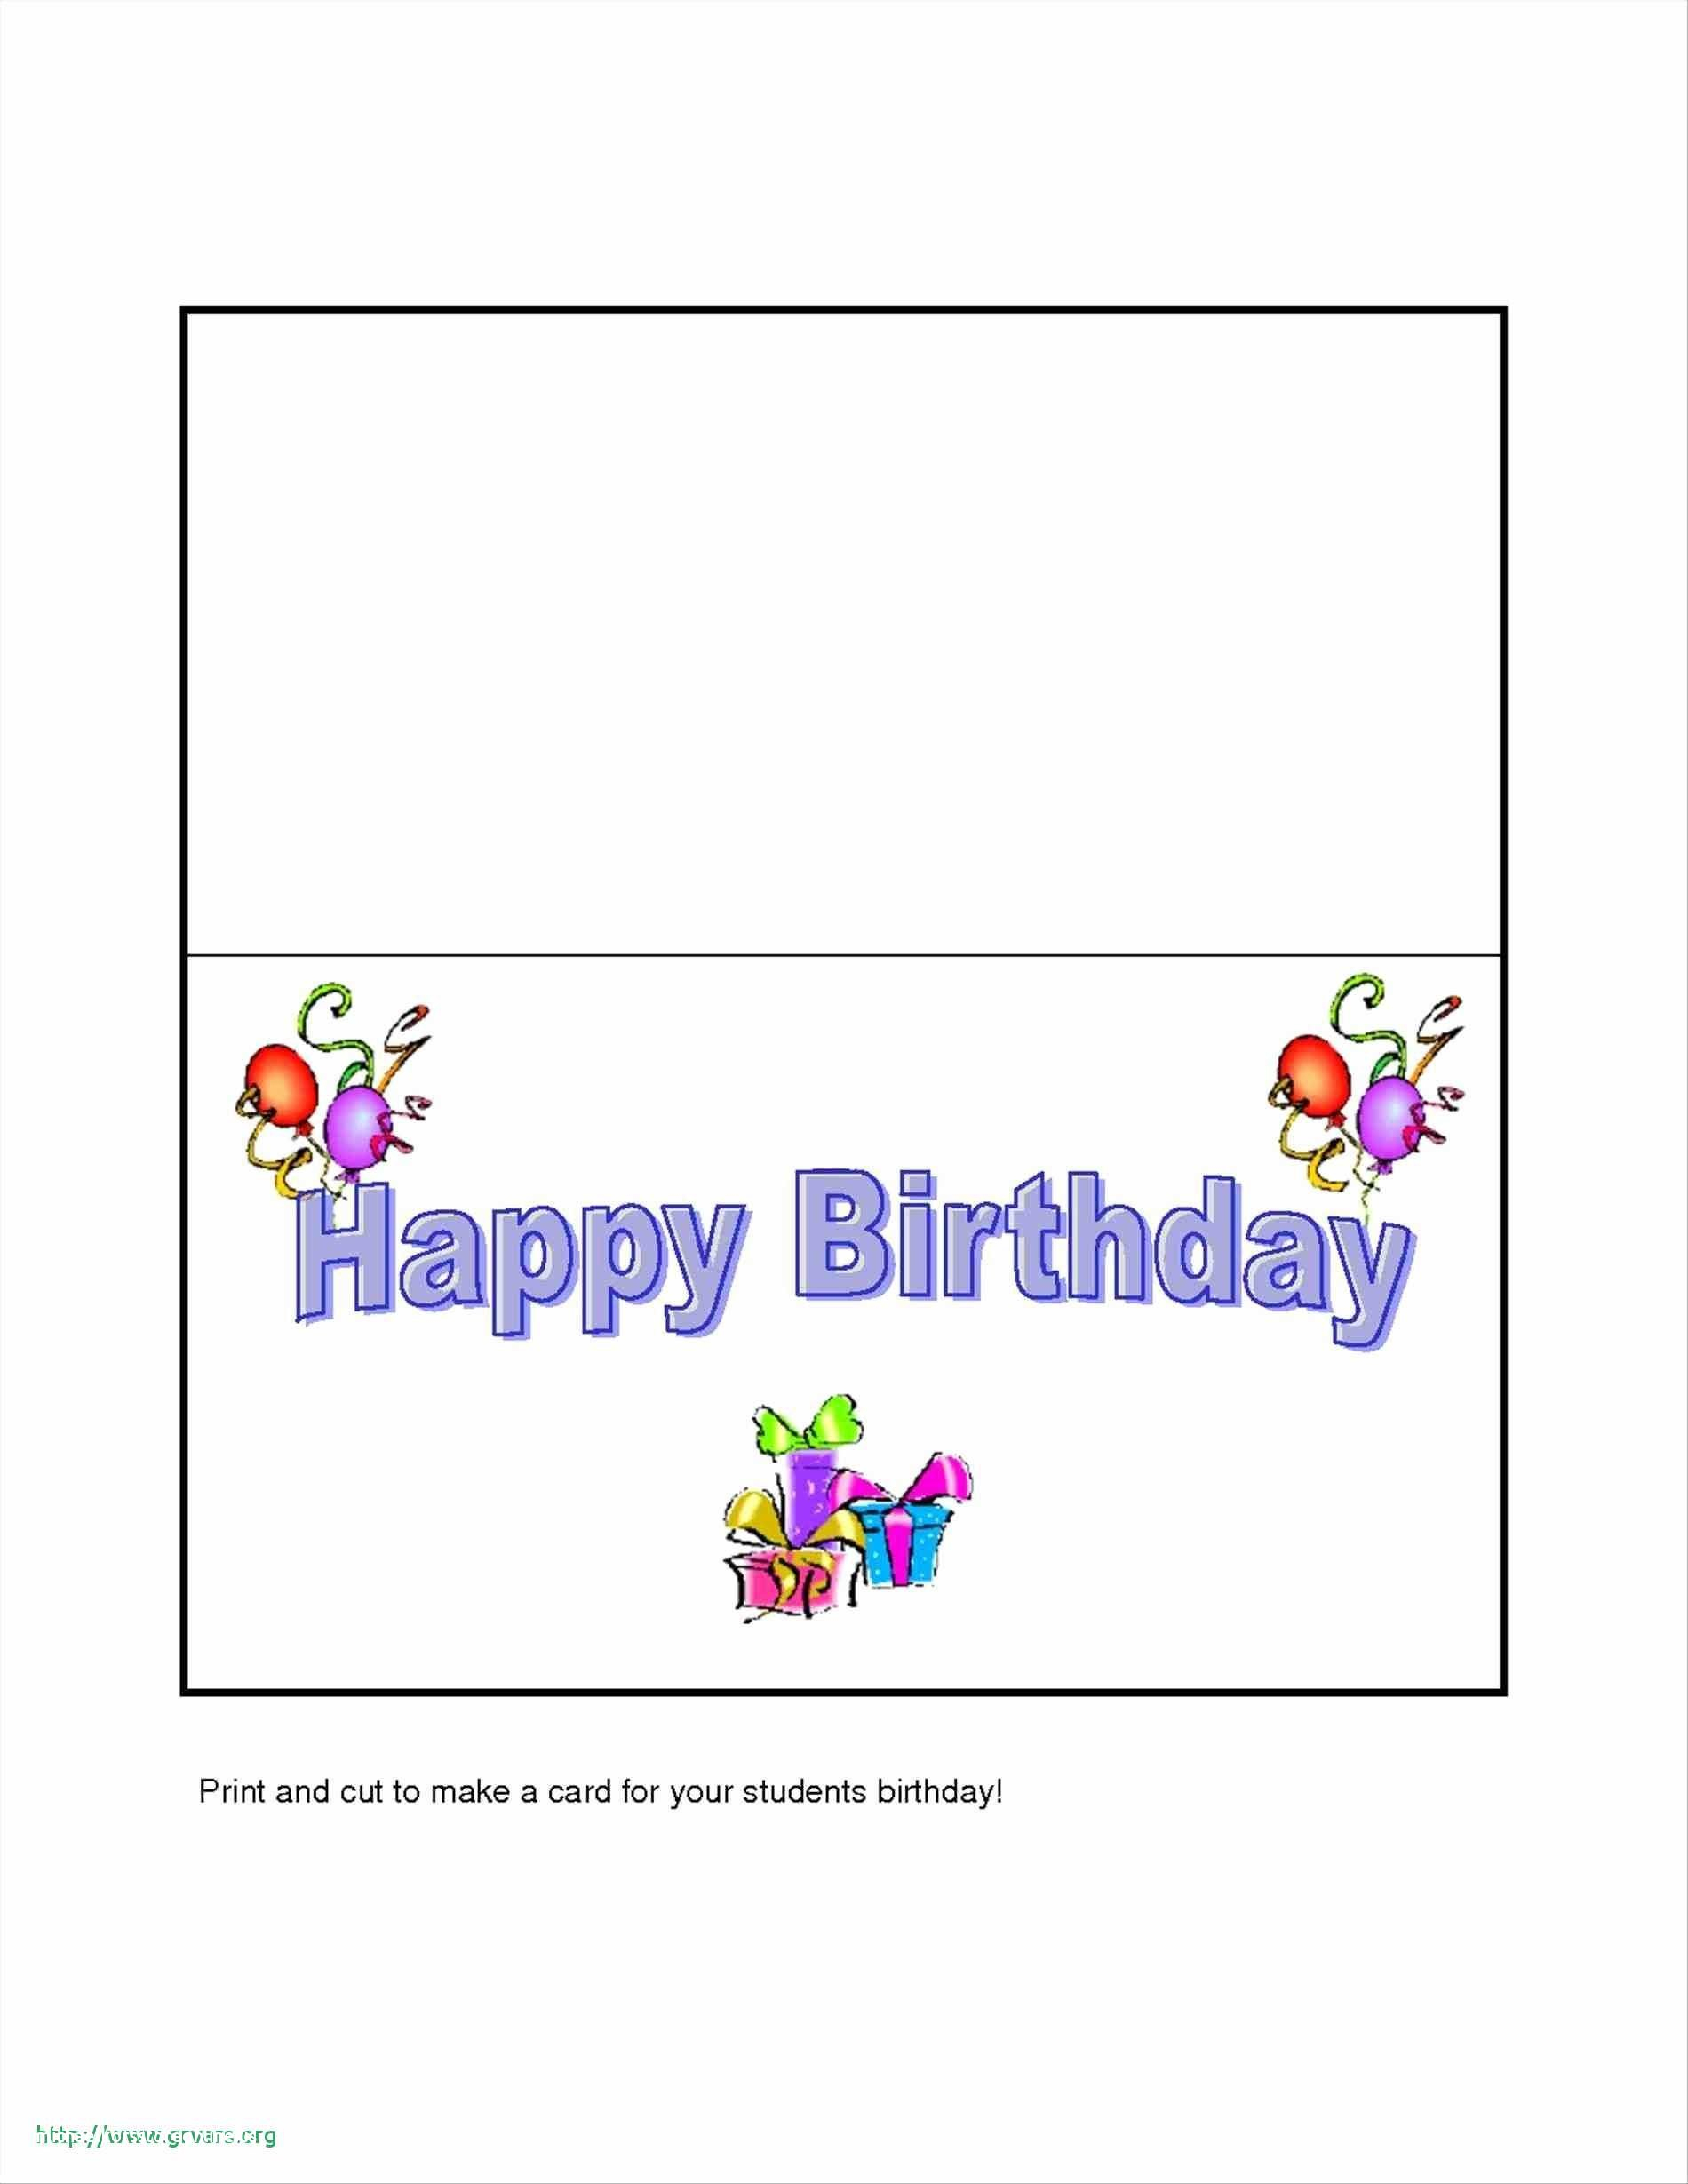 Lovely Print Christmas Cards Online | Birthday Card | Greeting Card - Free Printable Happy Birthday Cards Online